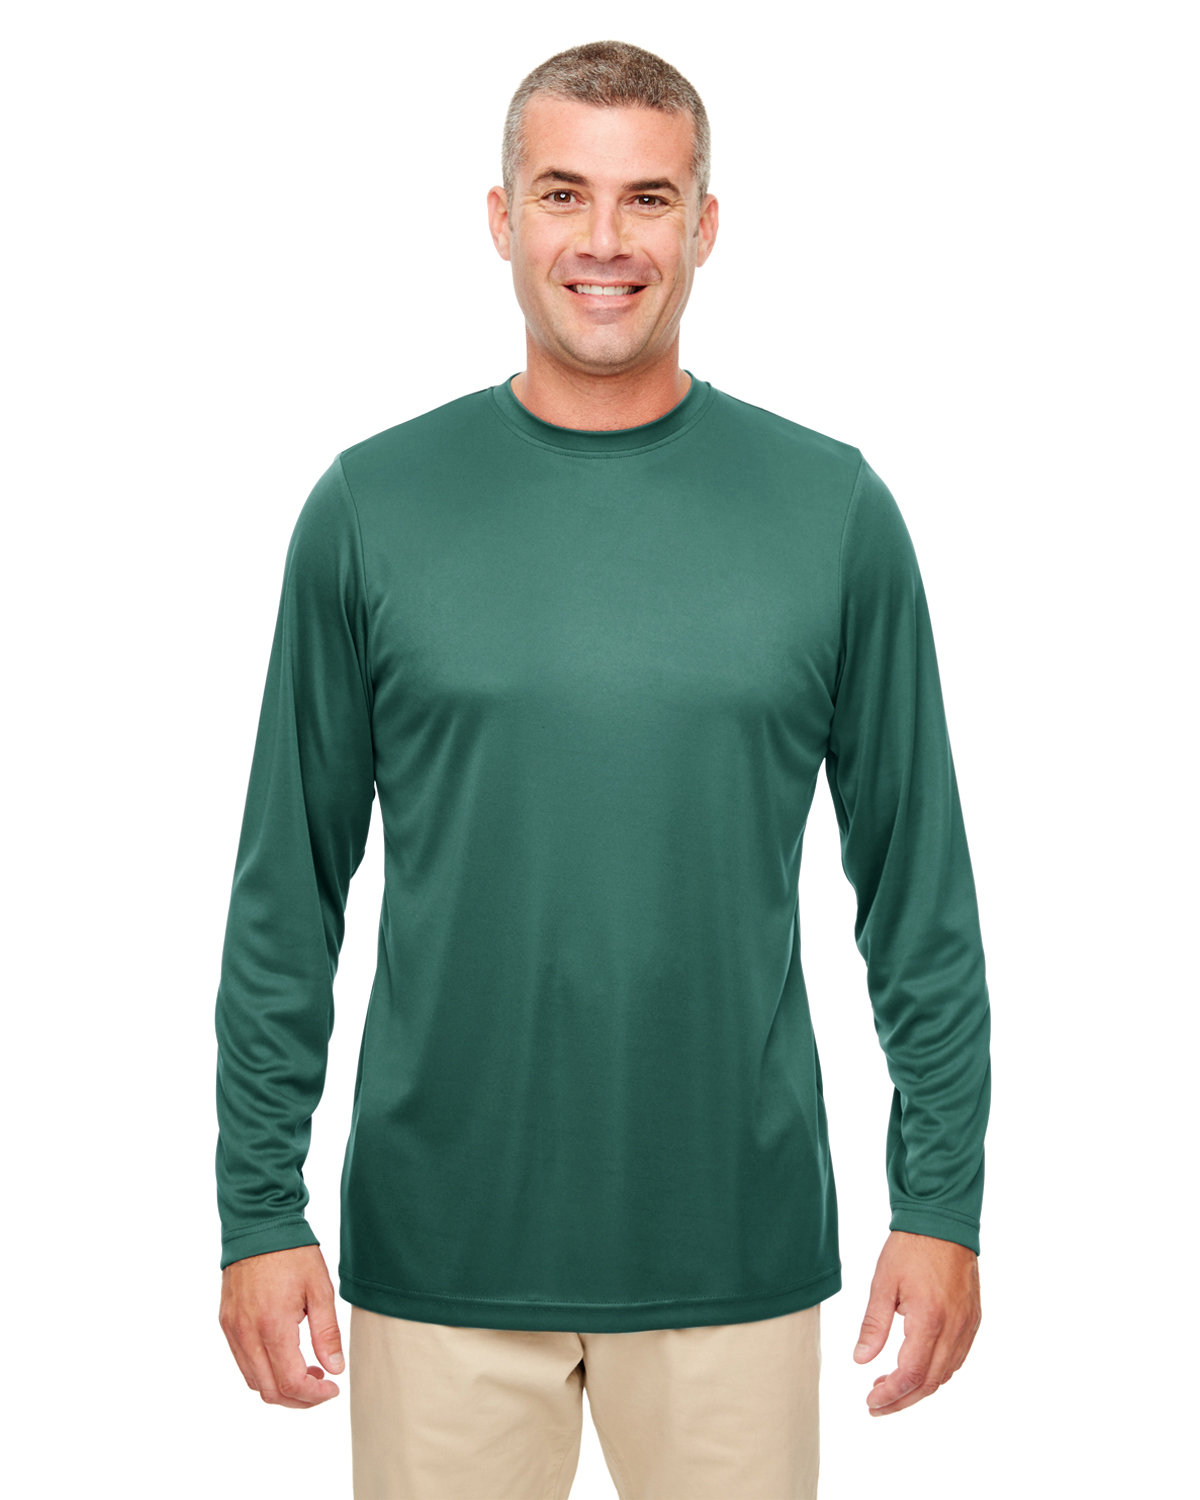 UltraClub Men's Cool & Dry Performance Long-Sleeve Top FOREST GREEN